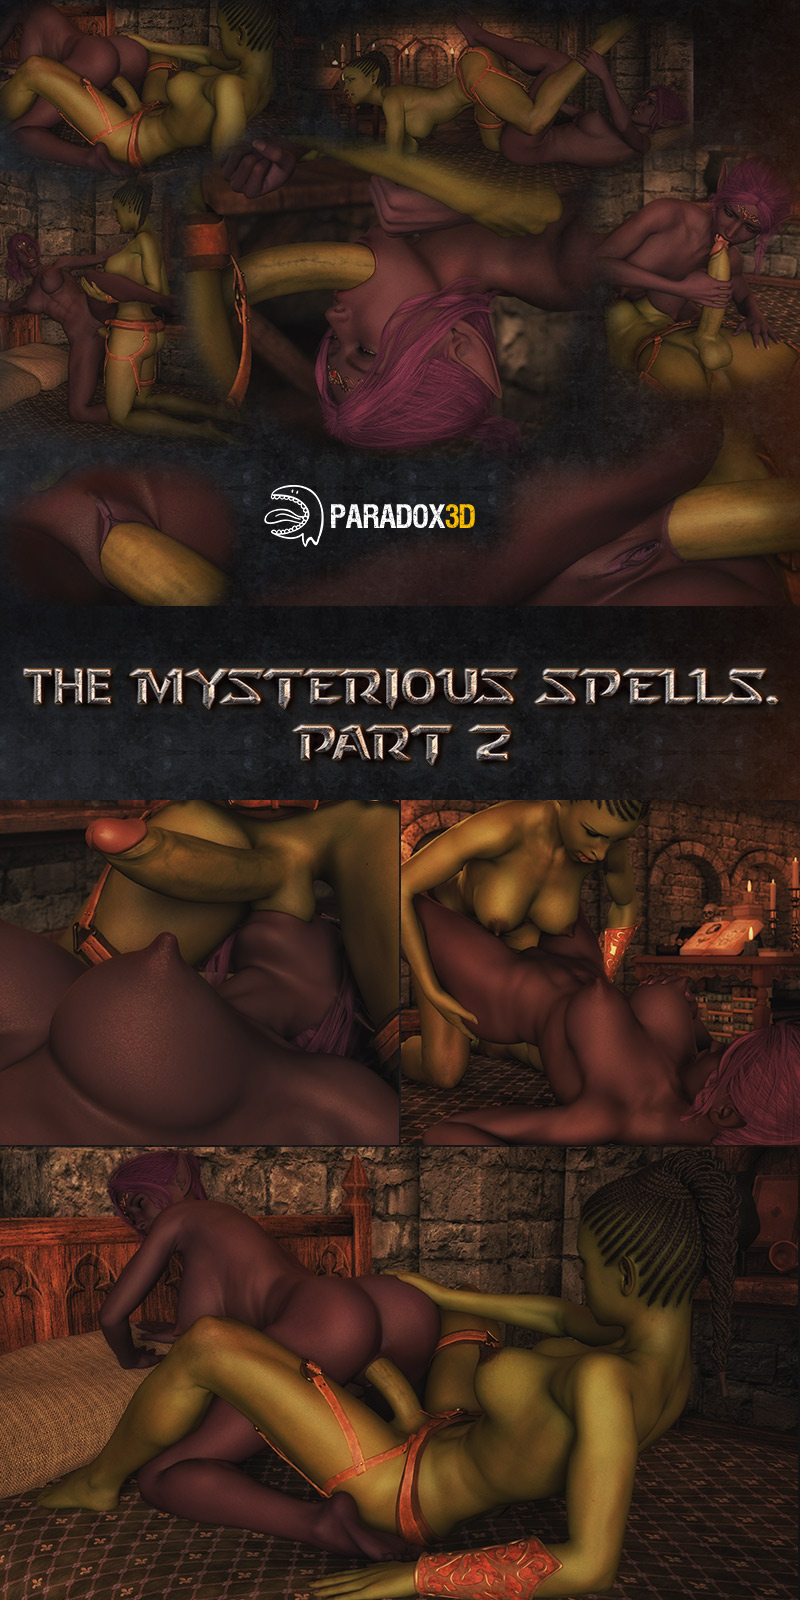 The Mysterious Spells: Part 2